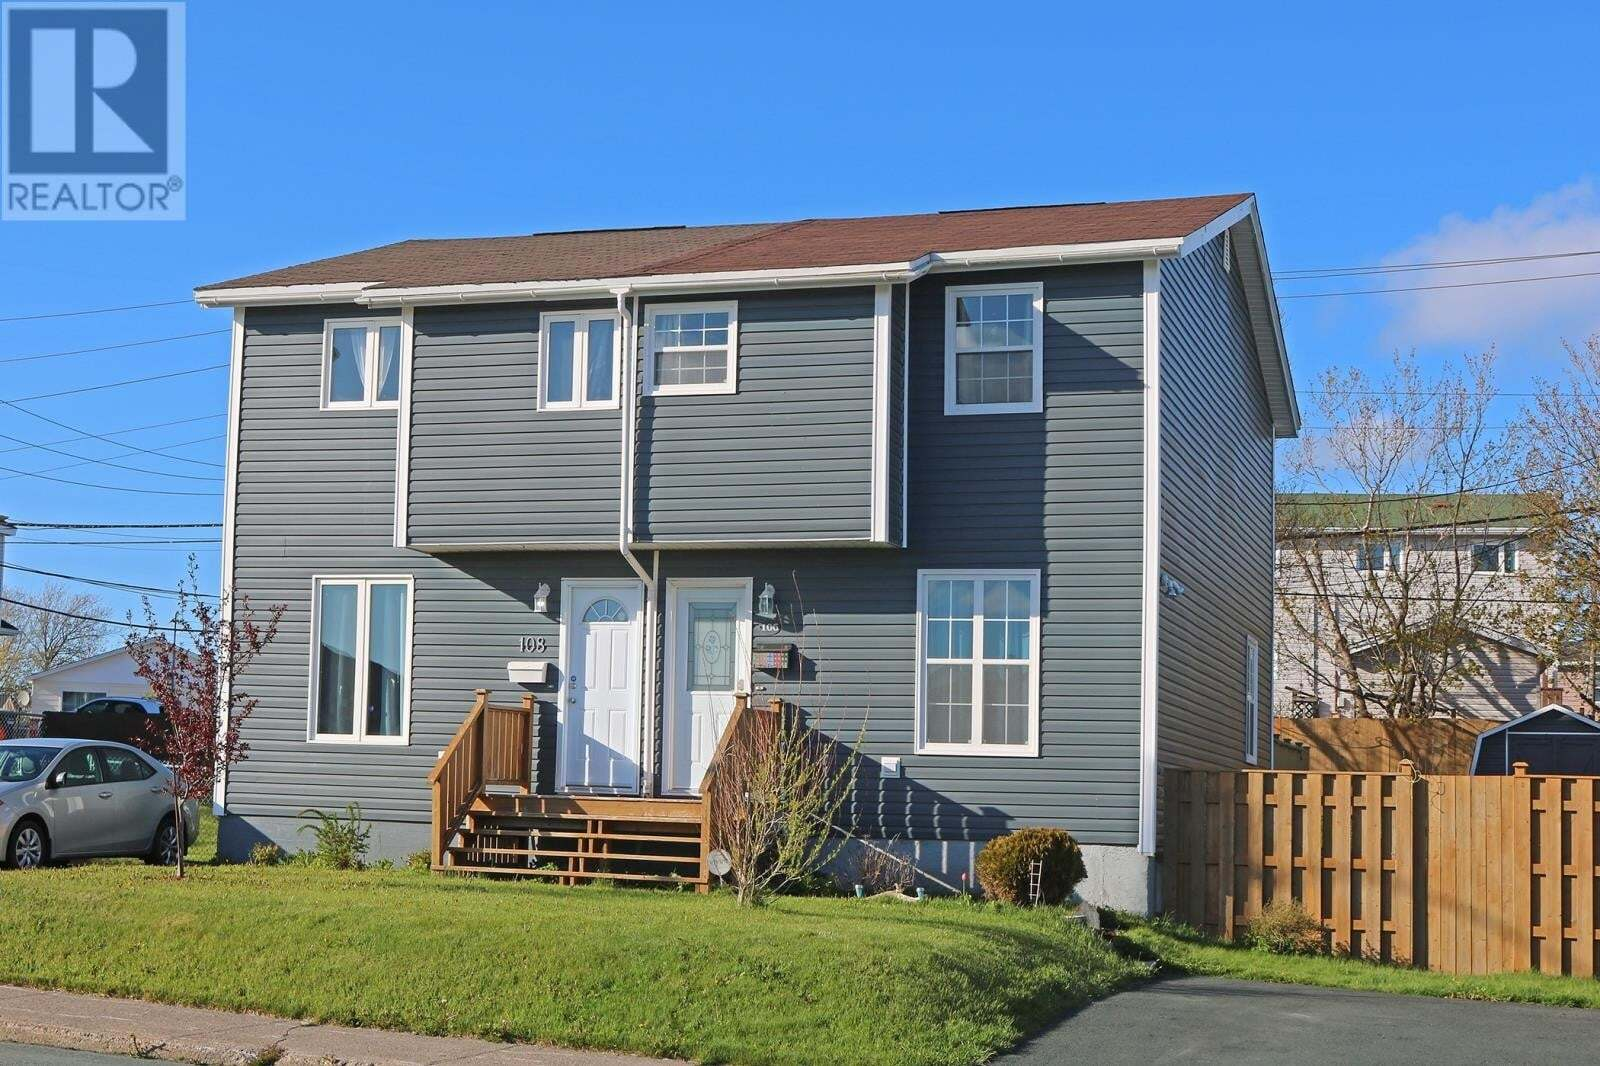 House for sale at 106 Glenview Te St. John's Newfoundland - MLS: 1214716